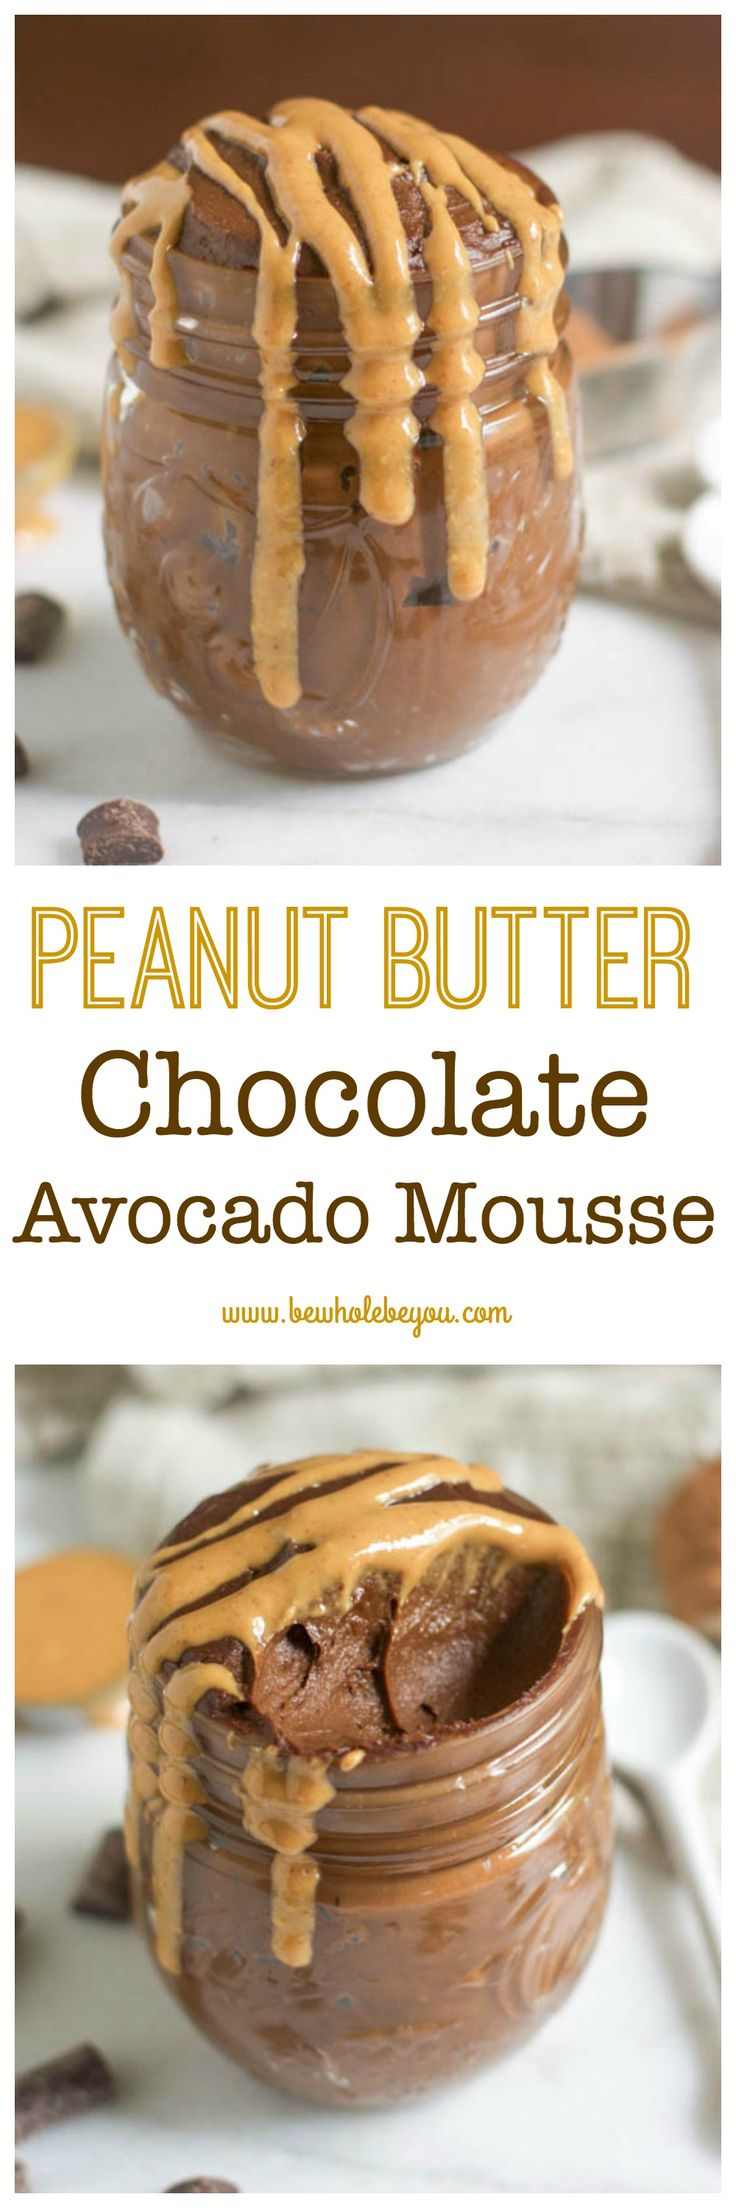 Peanut Butter Chocolate Avocado Mousse. Be Whole. Be You.